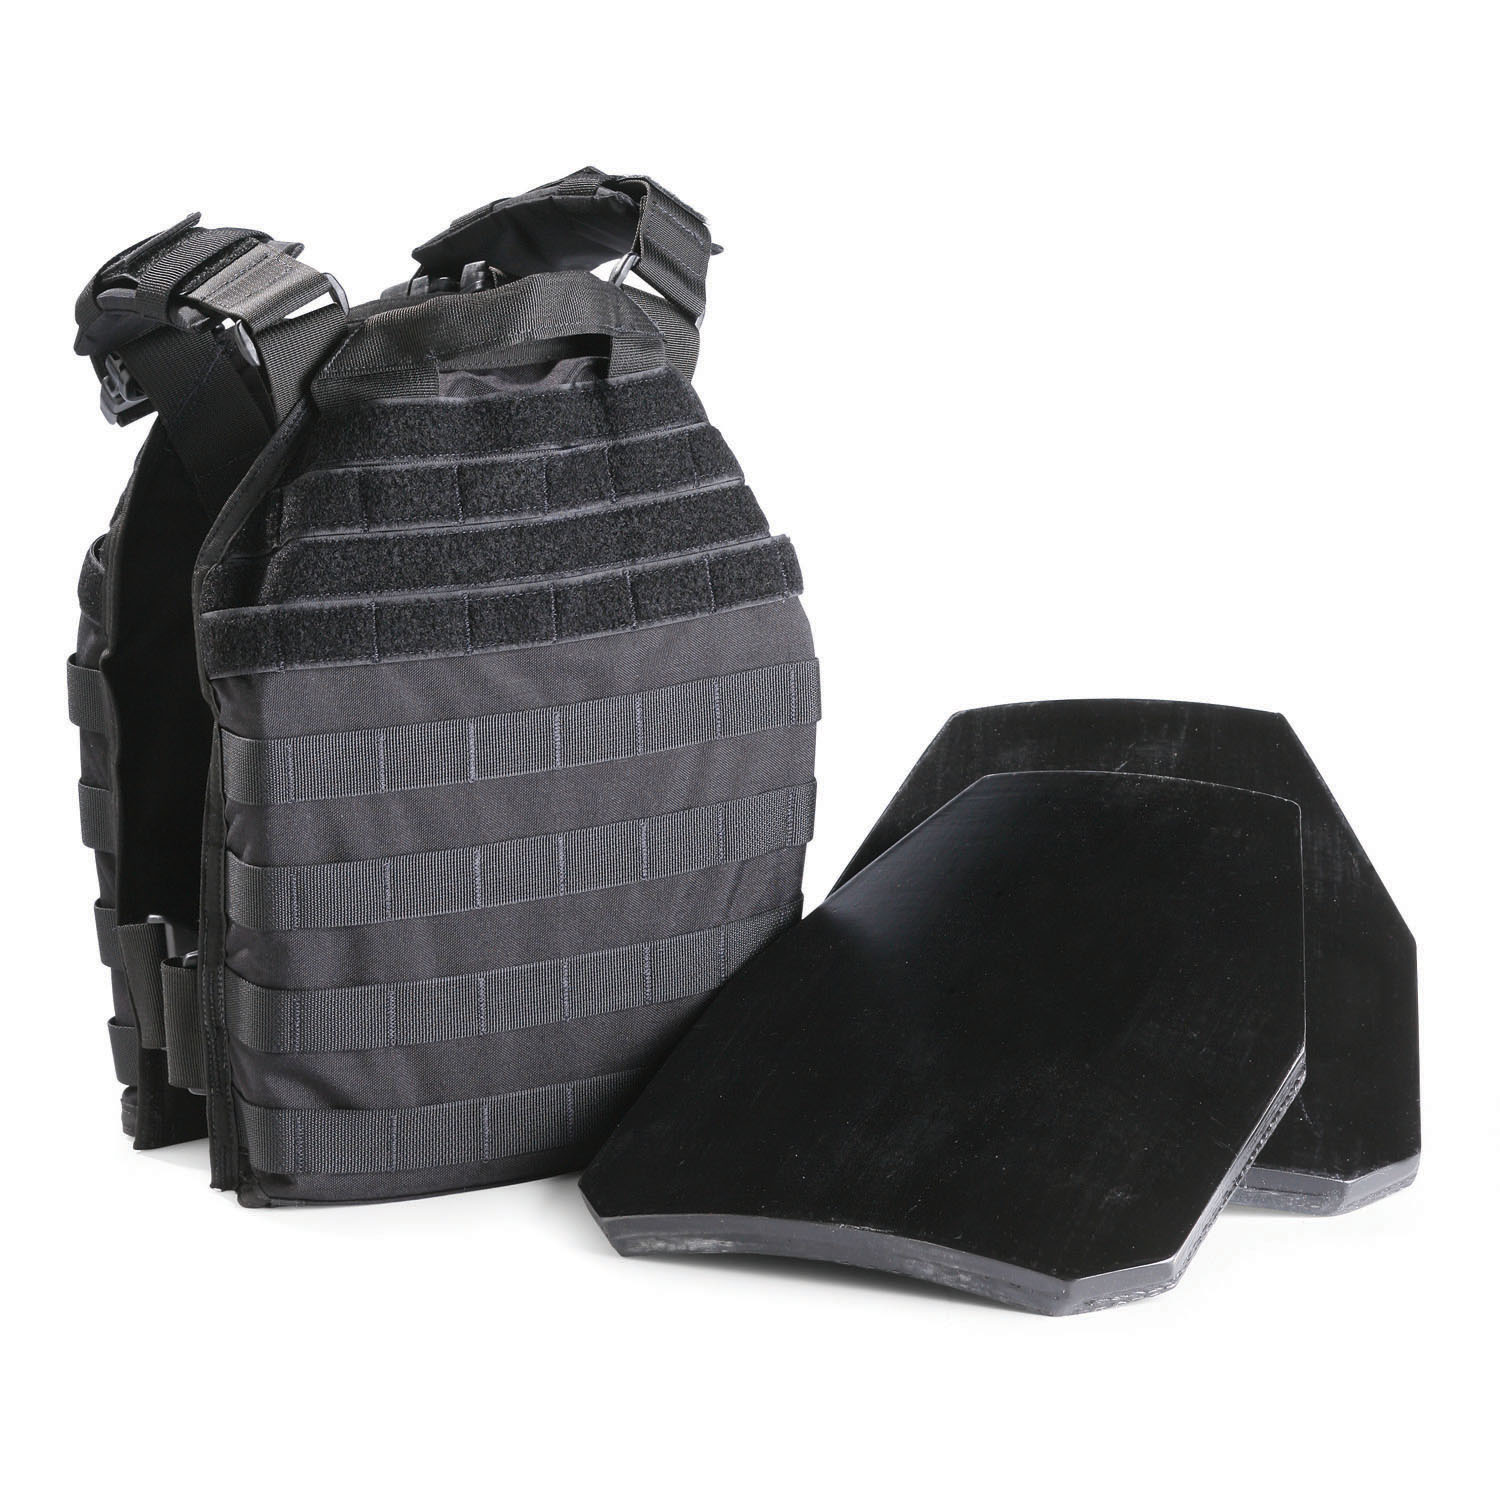 Point Blank Active Shooter Kit with NIJ 06 Level IV Plates